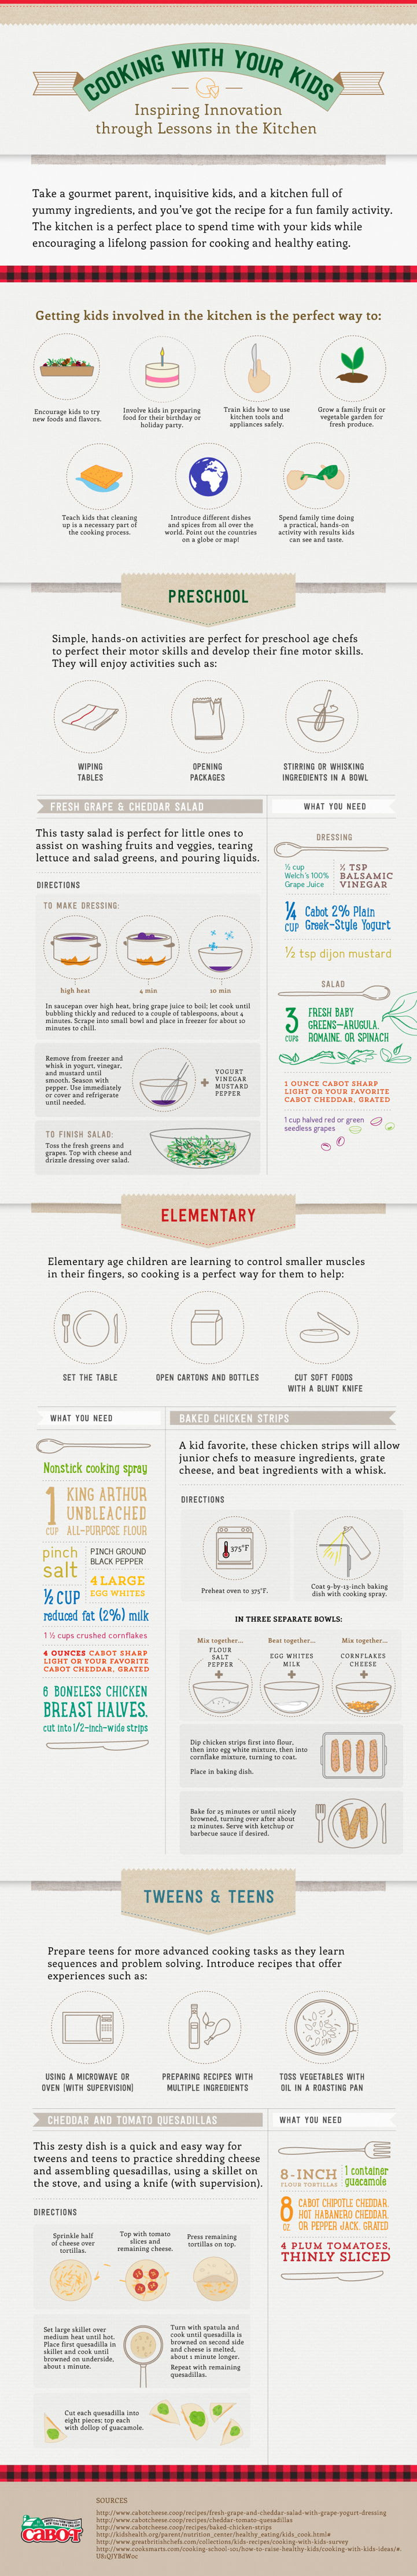 Infographic: Cooking With Your Kids